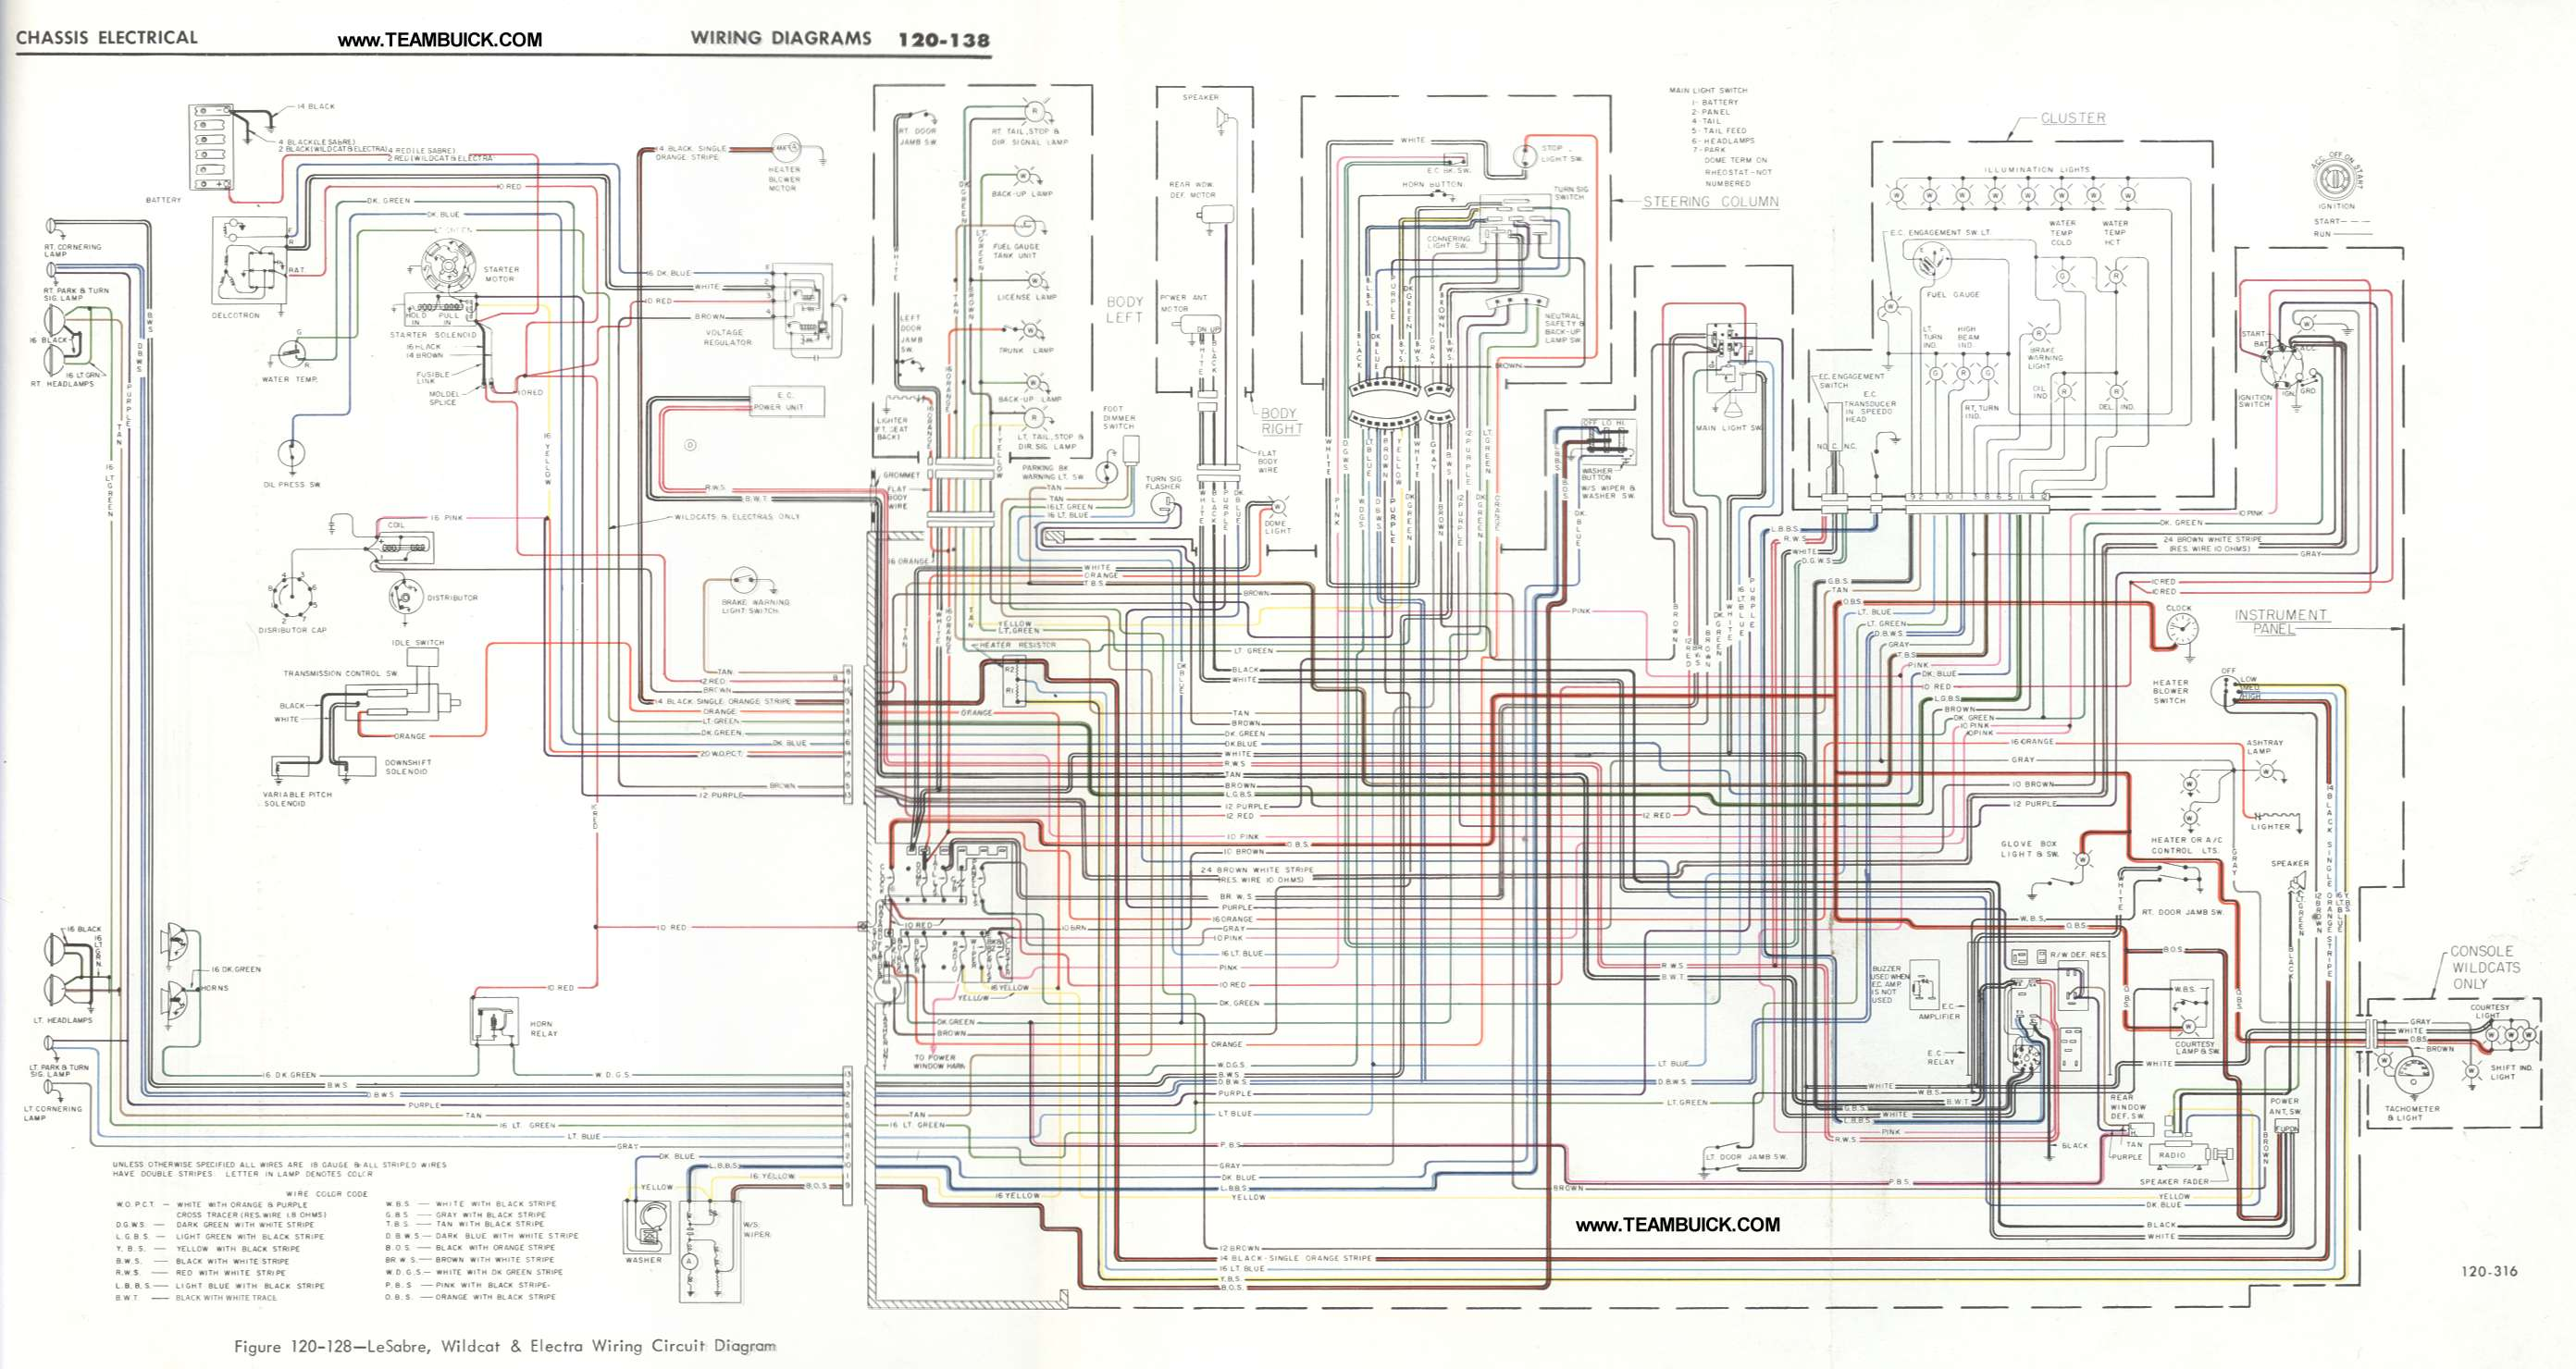 Buick Electra Wiring Diagram Great Design Of 53 Schematic